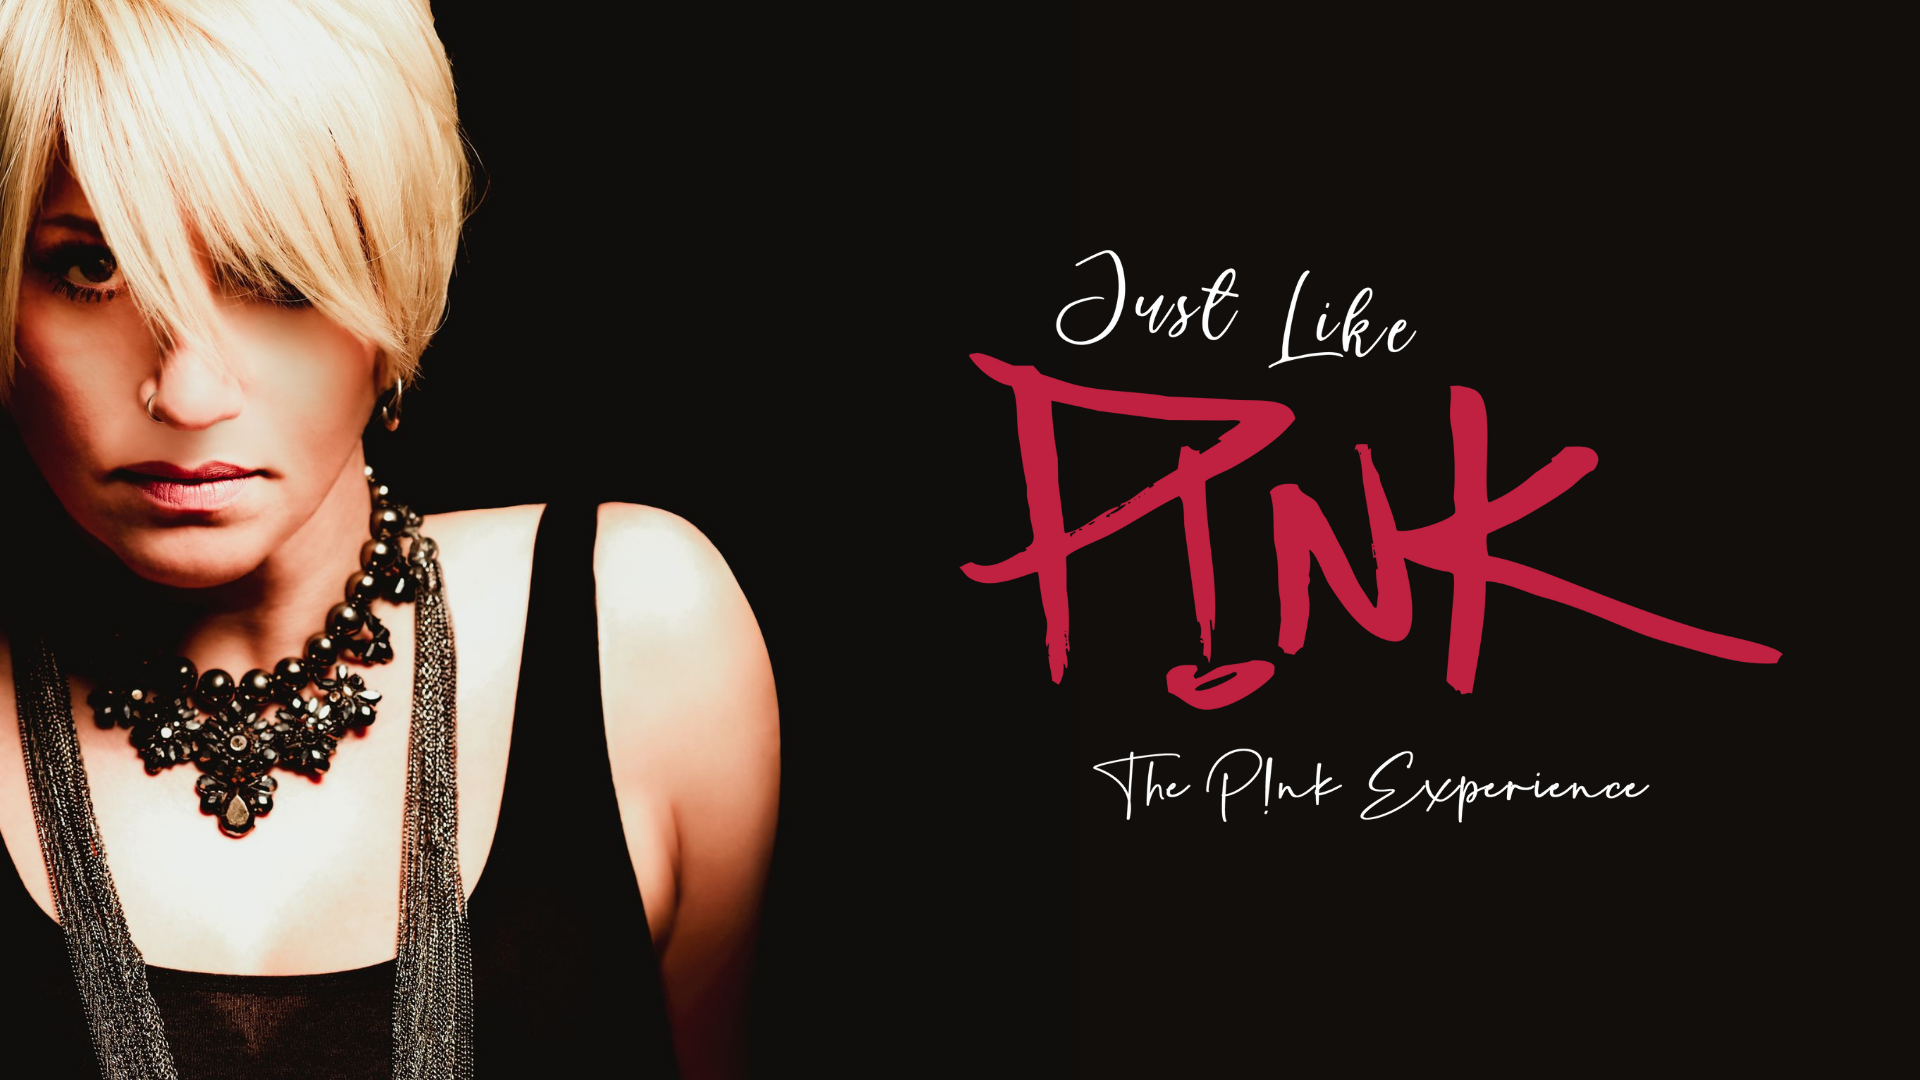 Promo image of P!nk Tribute: Just Like P!nk